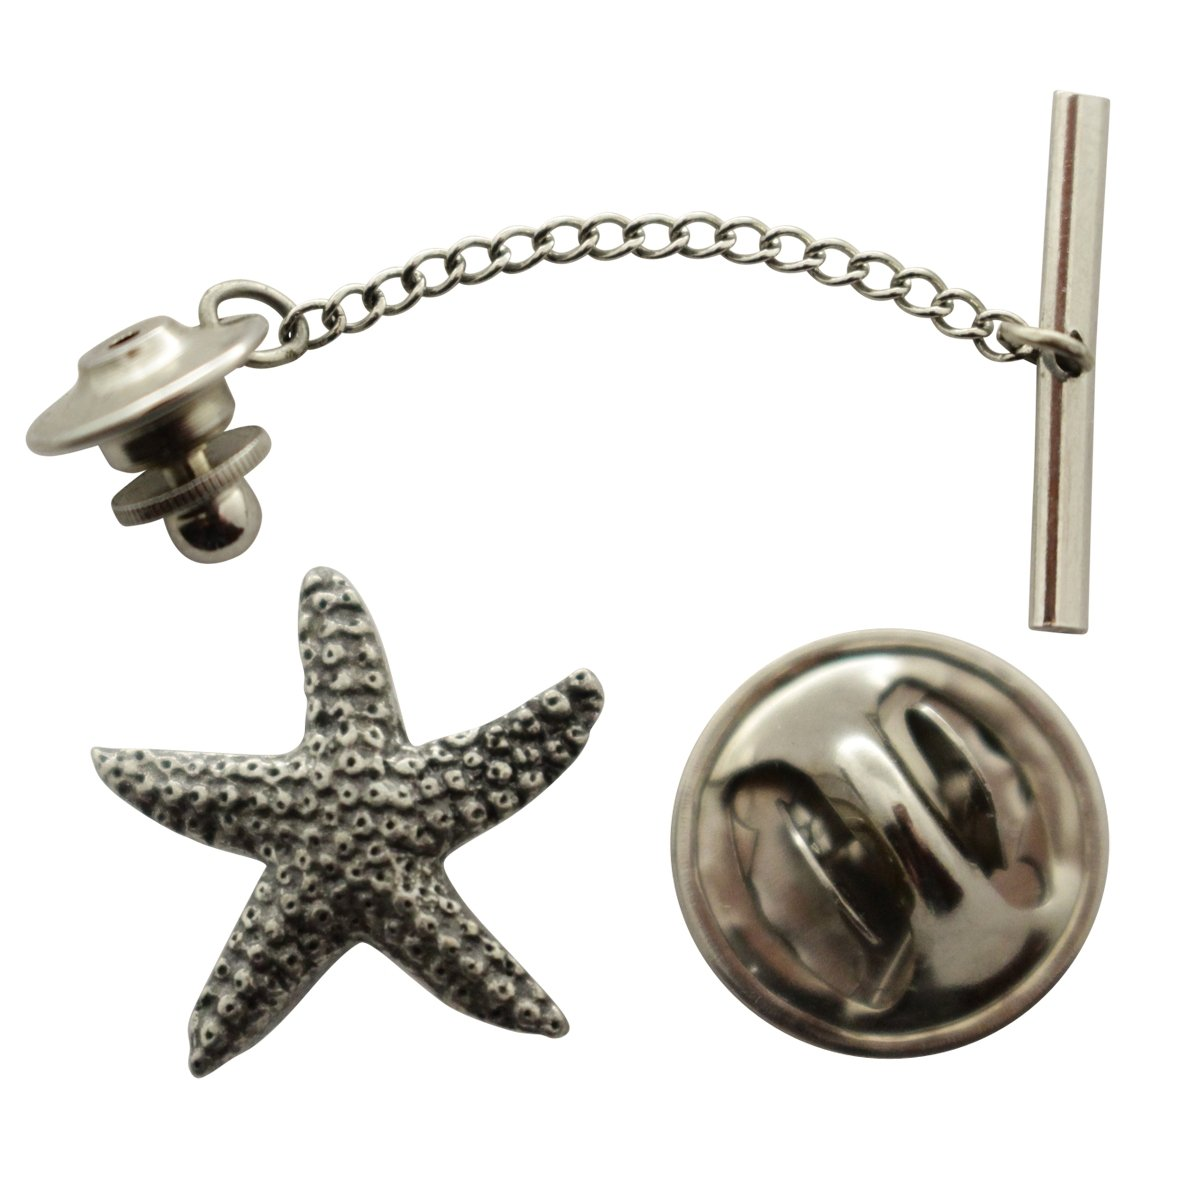 Starfish Tie Tack ~ Antiqued Pewter ~ Tie Tack or Pin ~ Sarah's Treats & Treasures by Sarah's Treats & Treasures (Image #1)